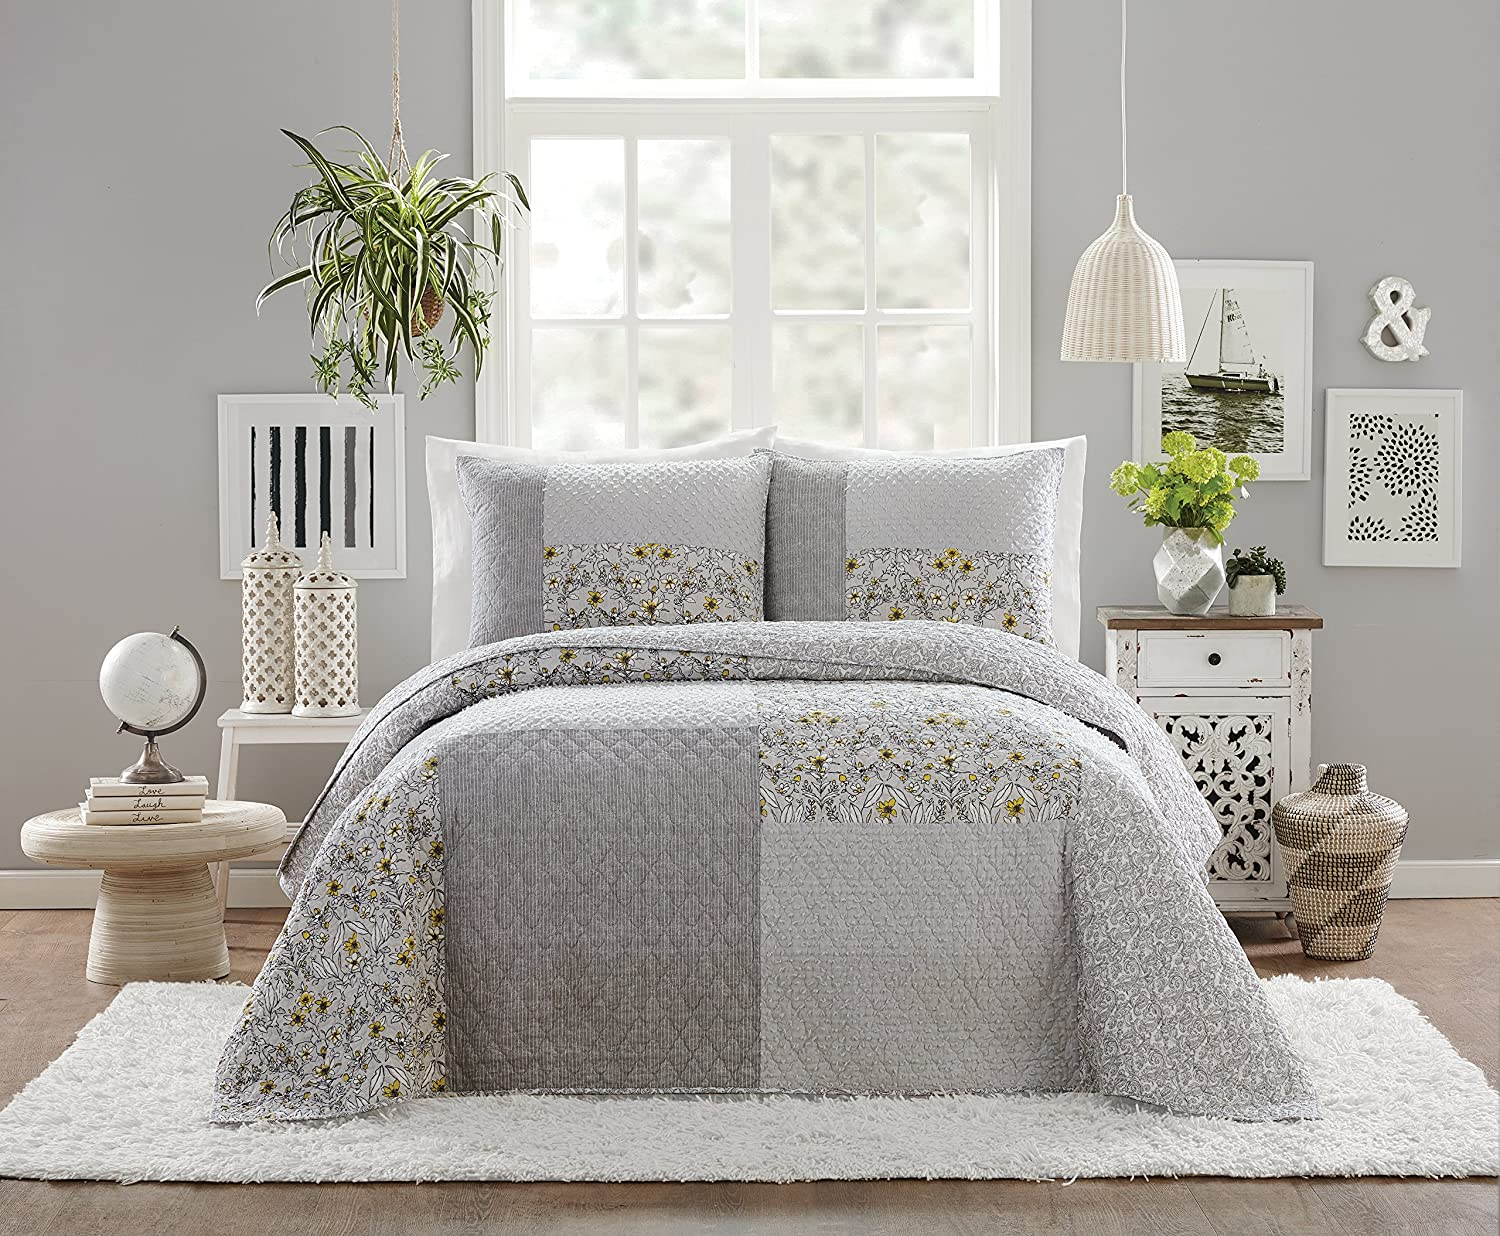 Jessica Simpson A035117GYNDE Quilt, Full Queen 88X90, Gray